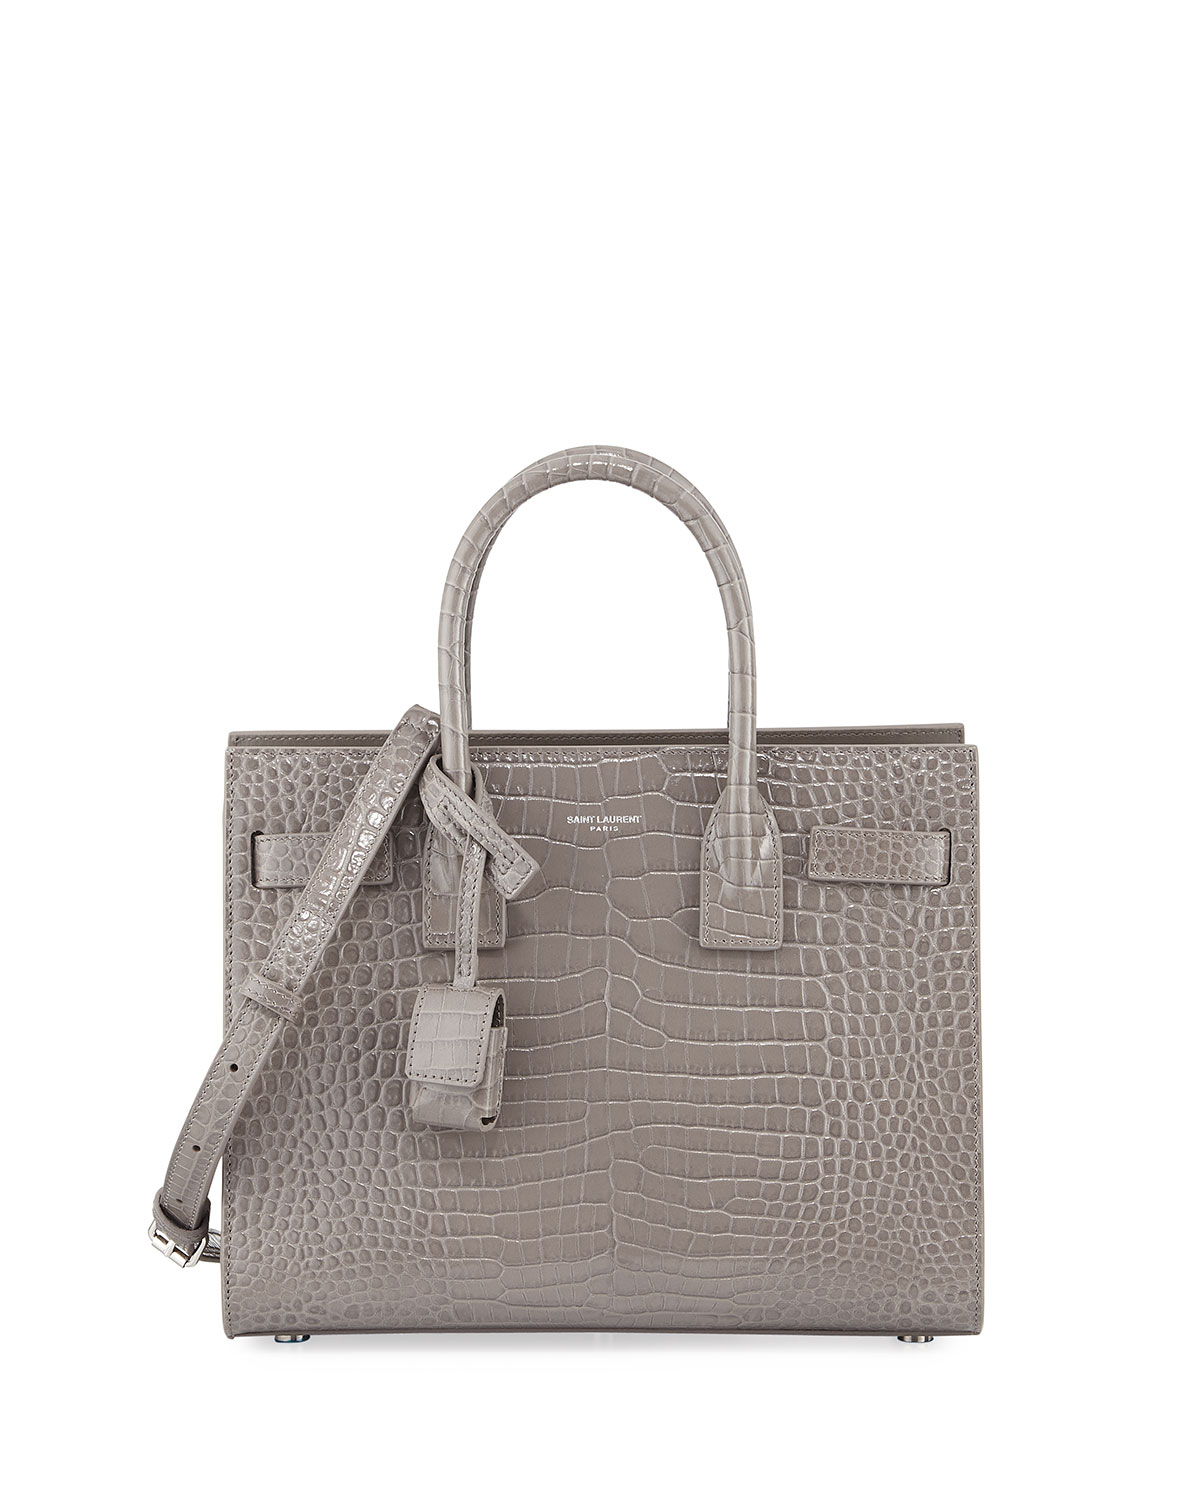 4f477b1a6f2 Saint Laurent Sac de Jour Baby Crocodile-Embossed Leather Satchel Bag |  Neiman Marcus